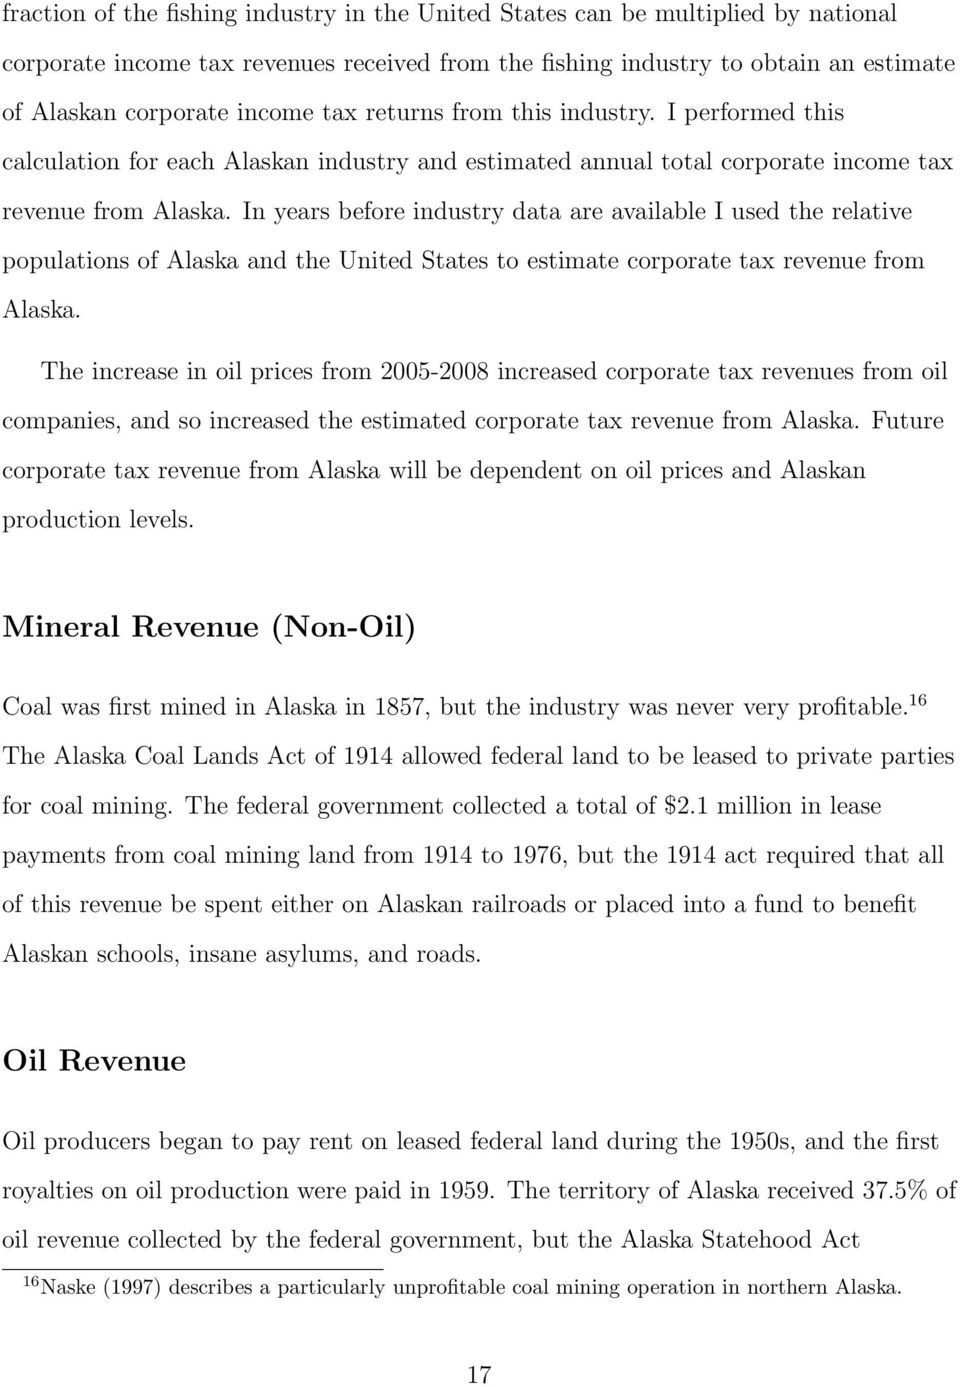 In years before industry data are available I used the relative populations of Alaska and the United States to estimate corporate tax revenue from Alaska.